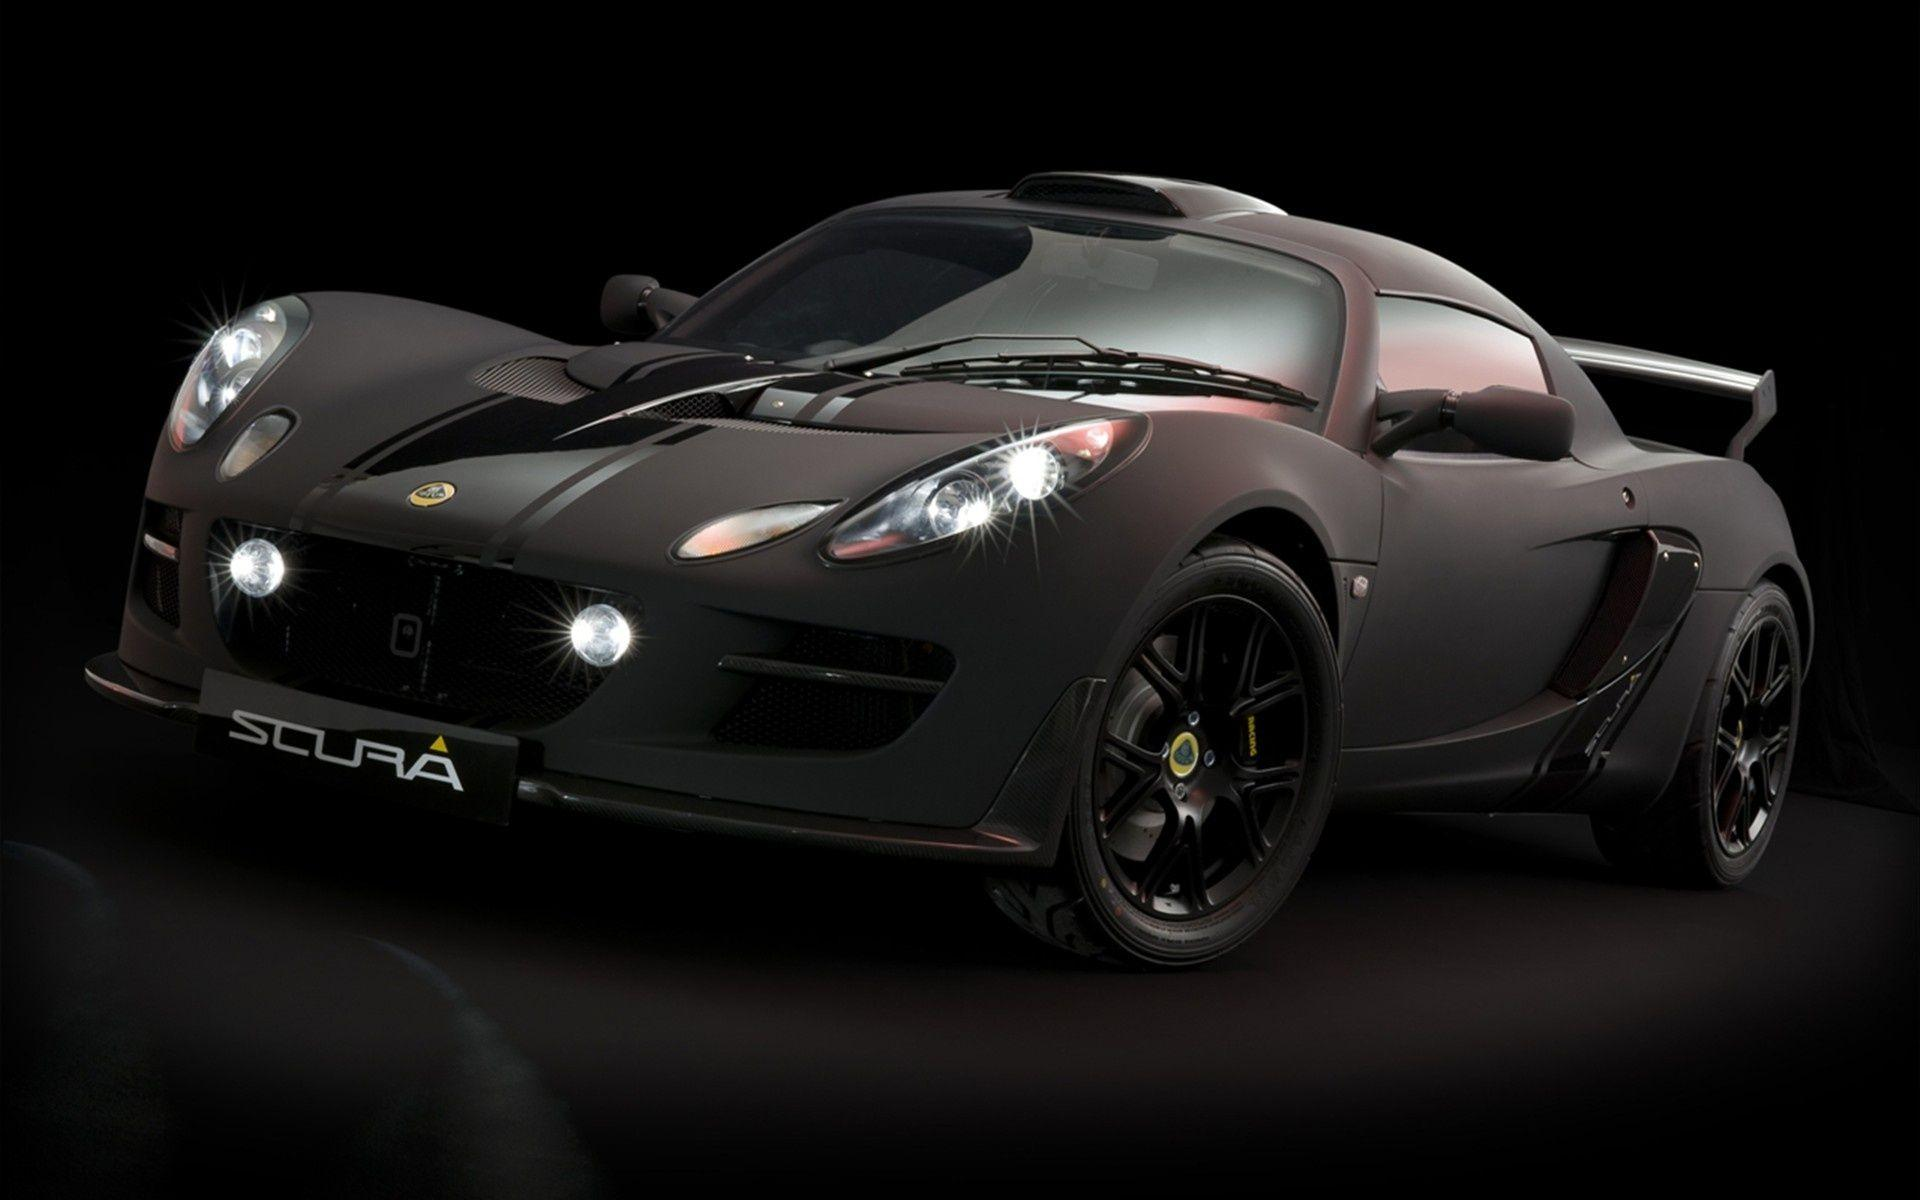 Lotus cars photos download wallpapers for free download about (790 ...